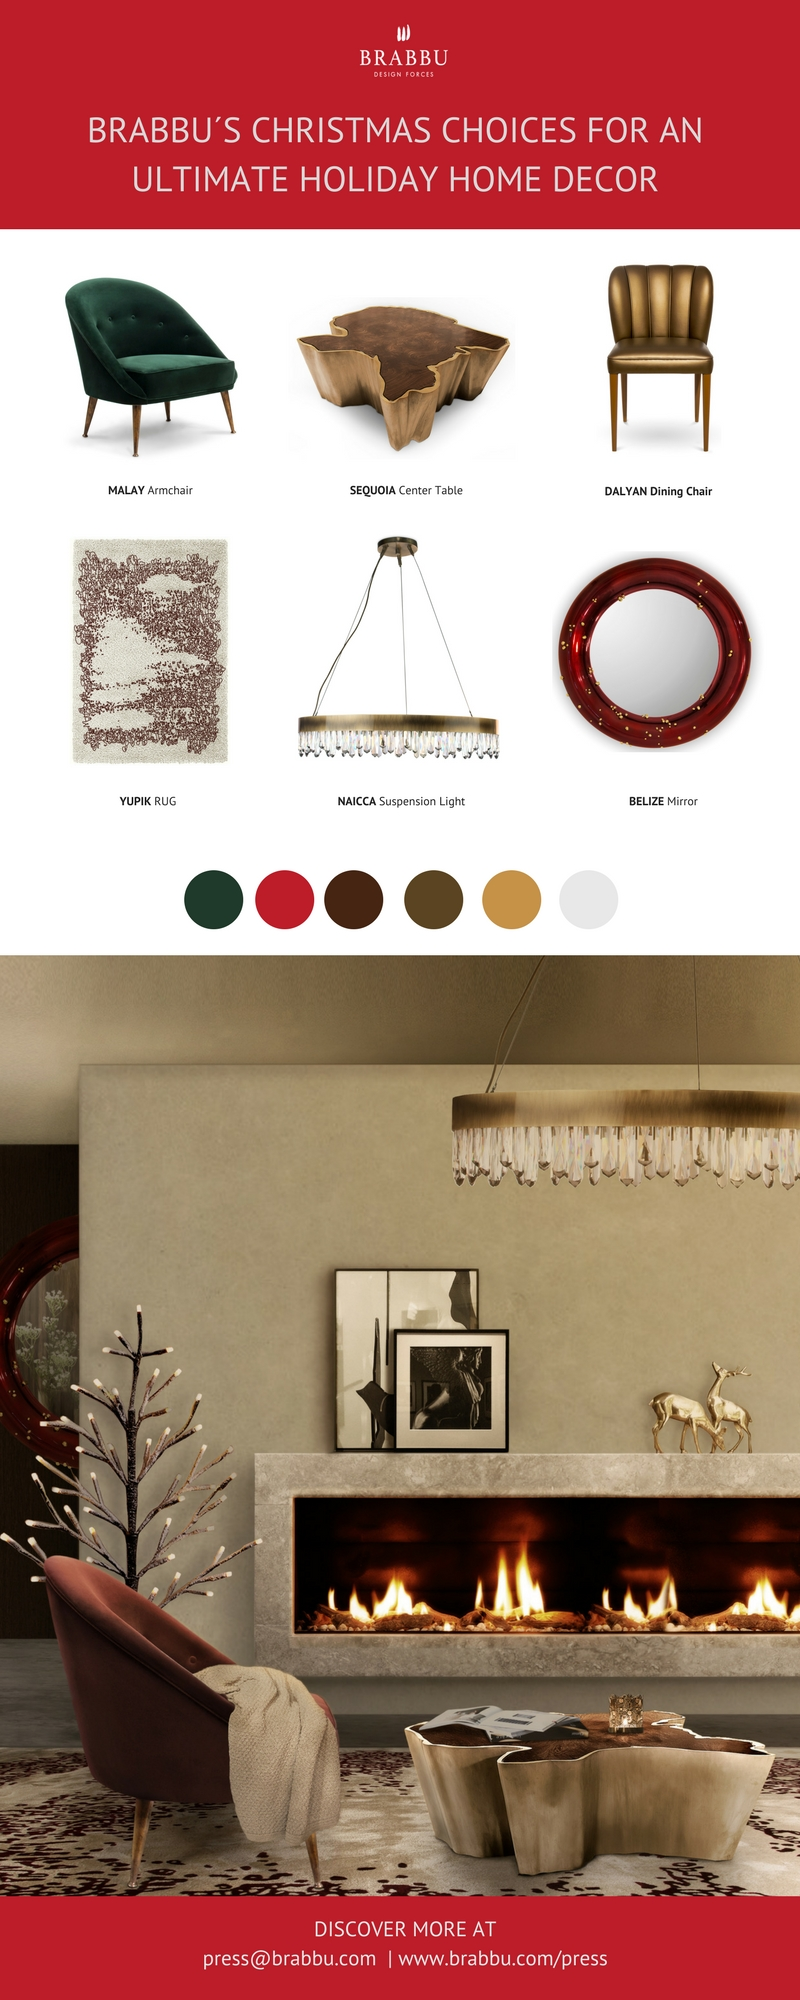 decorating ideas decorating ideas 2 lovely moodboards to inspire 100 decorating ideas this Christmas Infographic Christmas 2